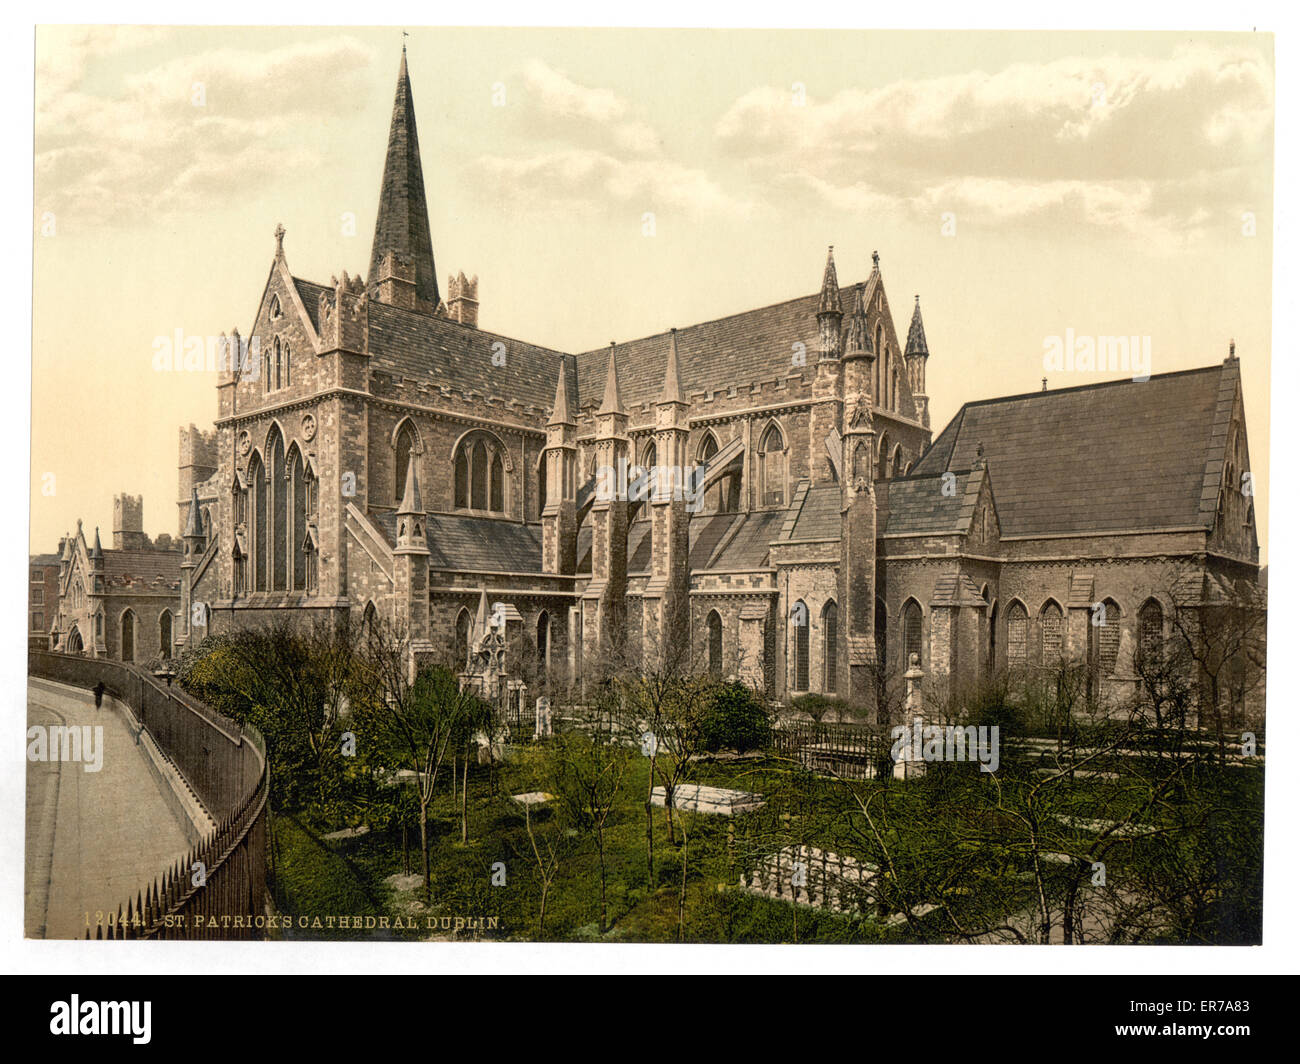 St. Patrick's Cathedral, Dublin. County Dublin, Ireland. Date between ca. 1890 and ca. 1900. - Stock Image